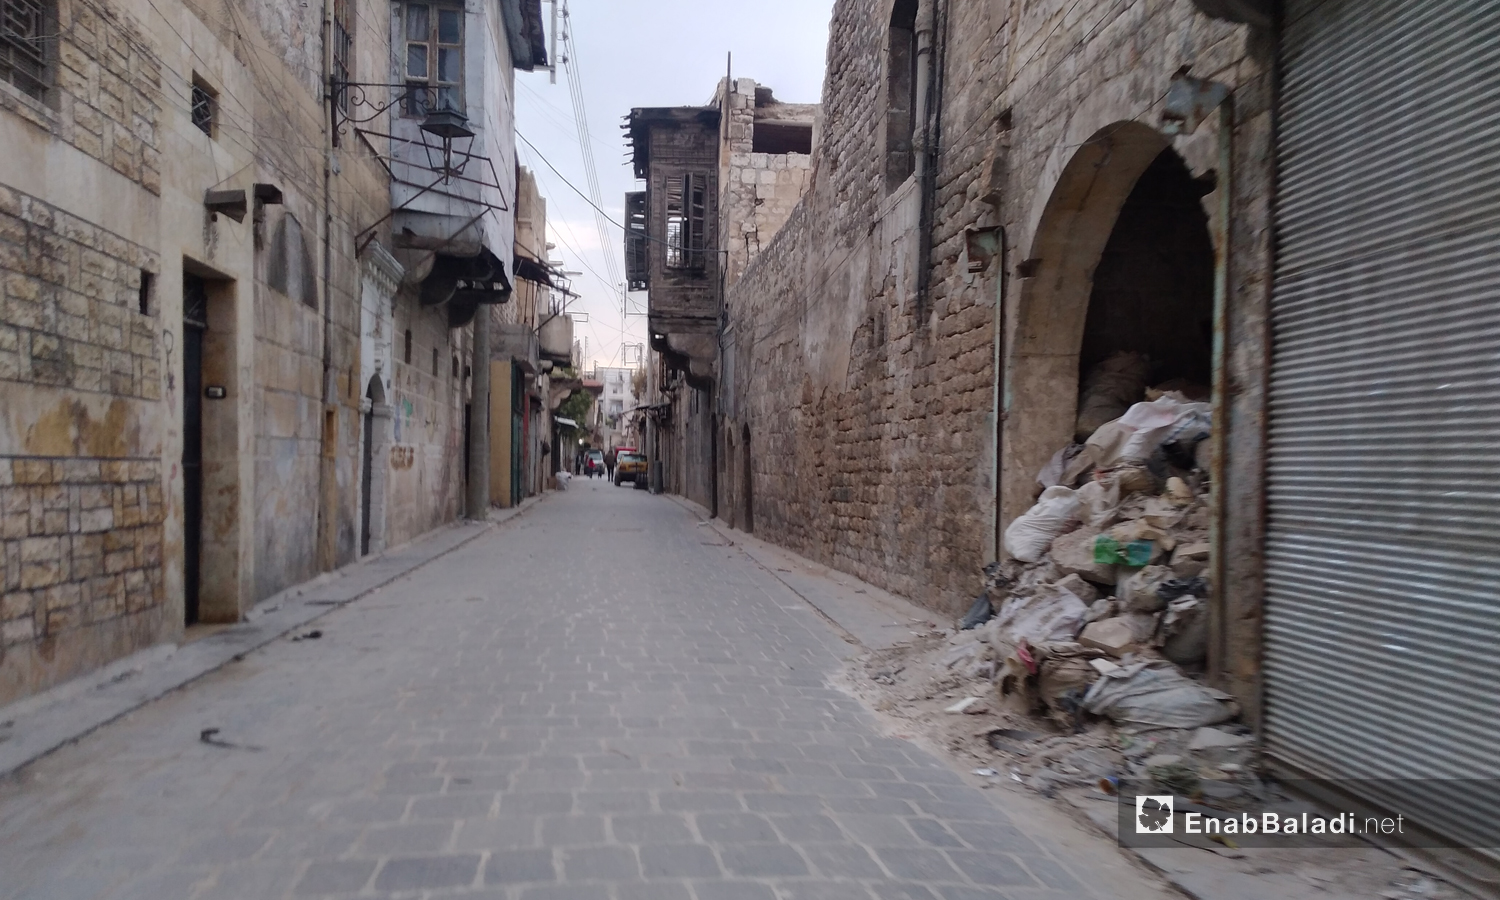 A street in the old city of Aleppo - 17 November 2020 (Enab Baladi)